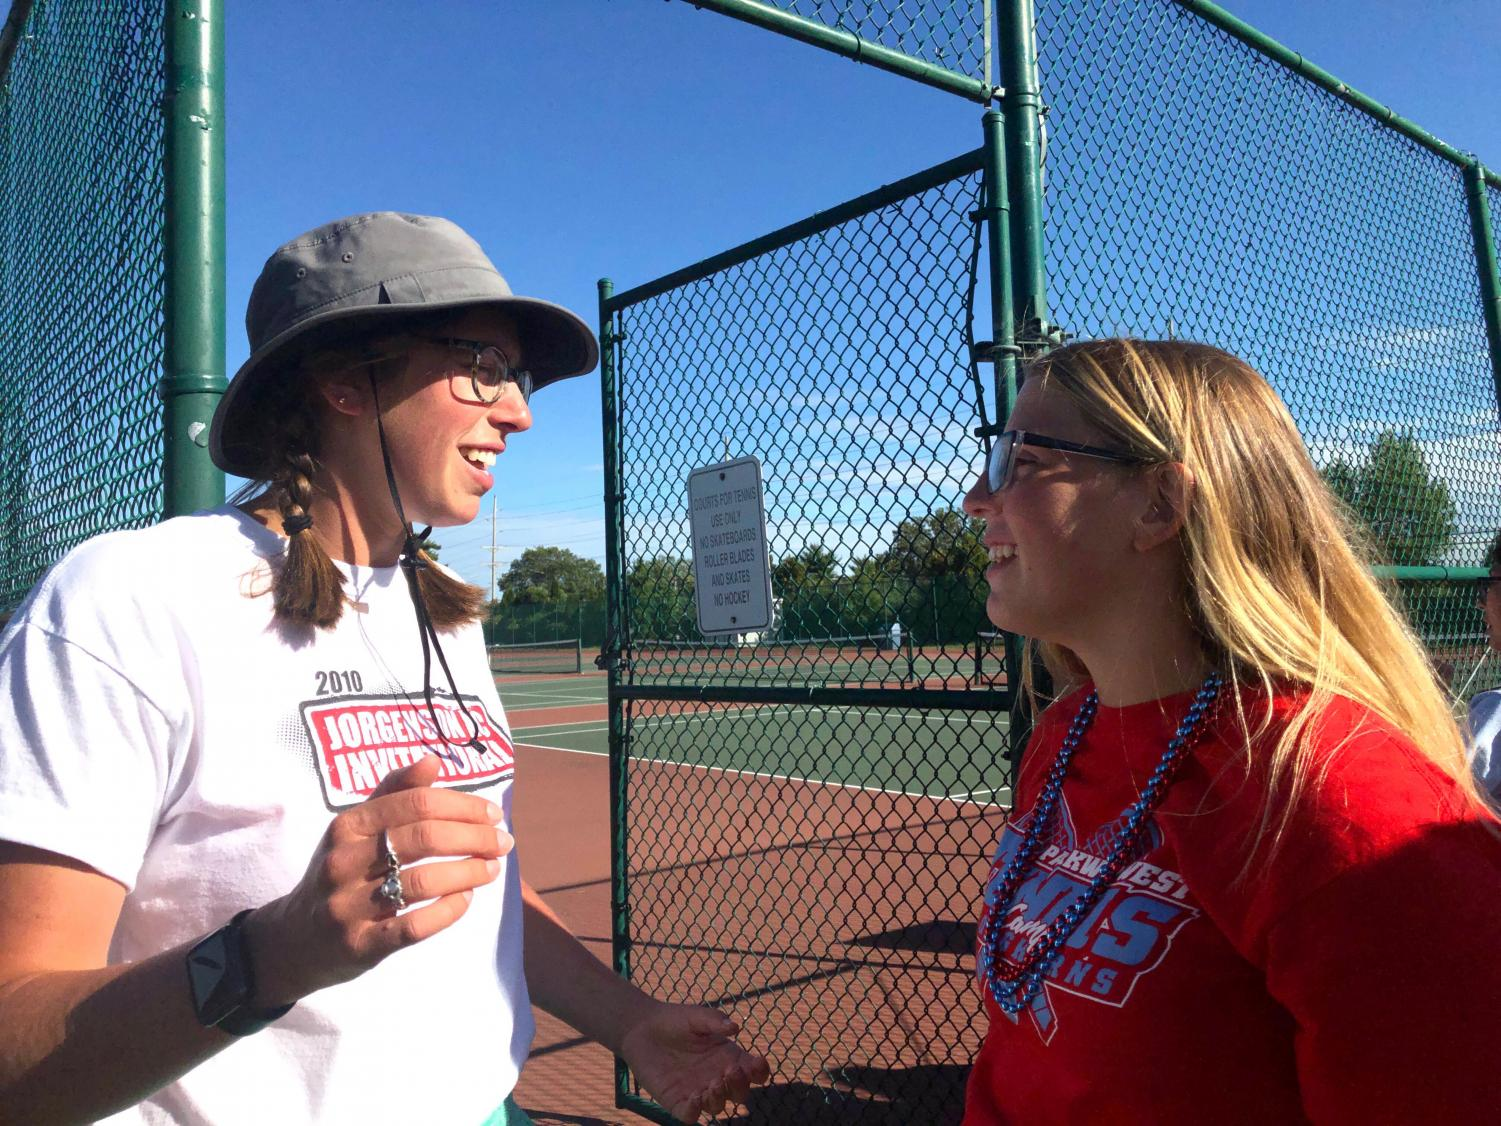 "JV tennis coach Audra Hartwell gives sophomore Betsy Weaver parade line up details before the Homecoming parade begins. Hartwell made a point to her players about having fun while also competing at a high level. "" I want tennis to be the best part of their day because it keeps them coming back,"" Hartwell said. ""I want them excited to come to practice or a match."""